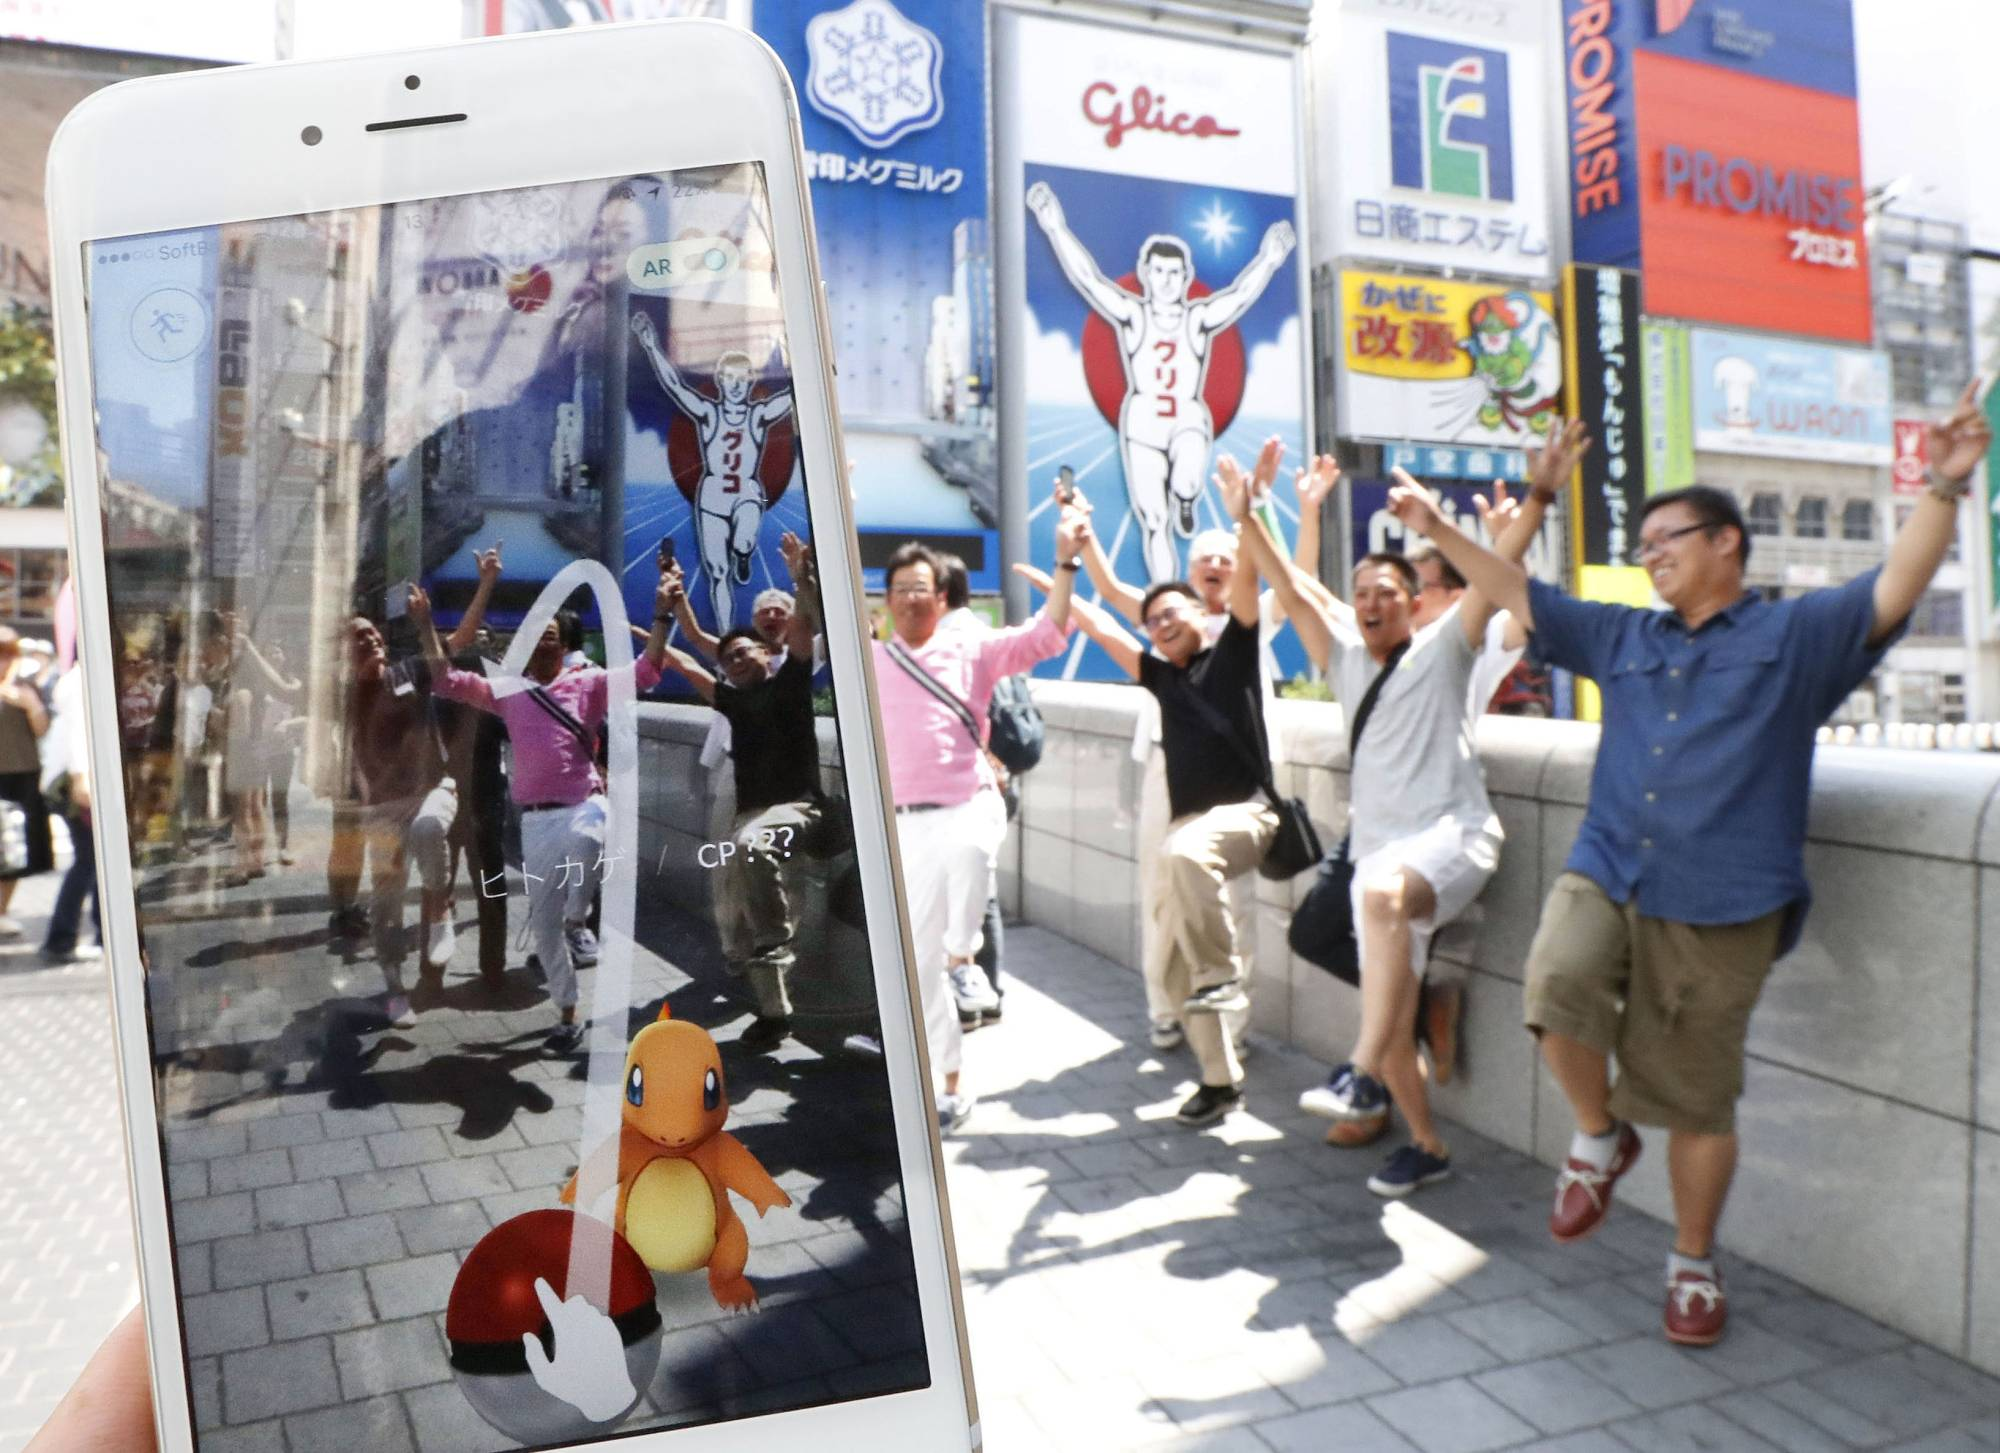 People play Pokemon Go in the Minami district of Osaka on July 22, 2016, the day the game debuted in Japan. | KYODO